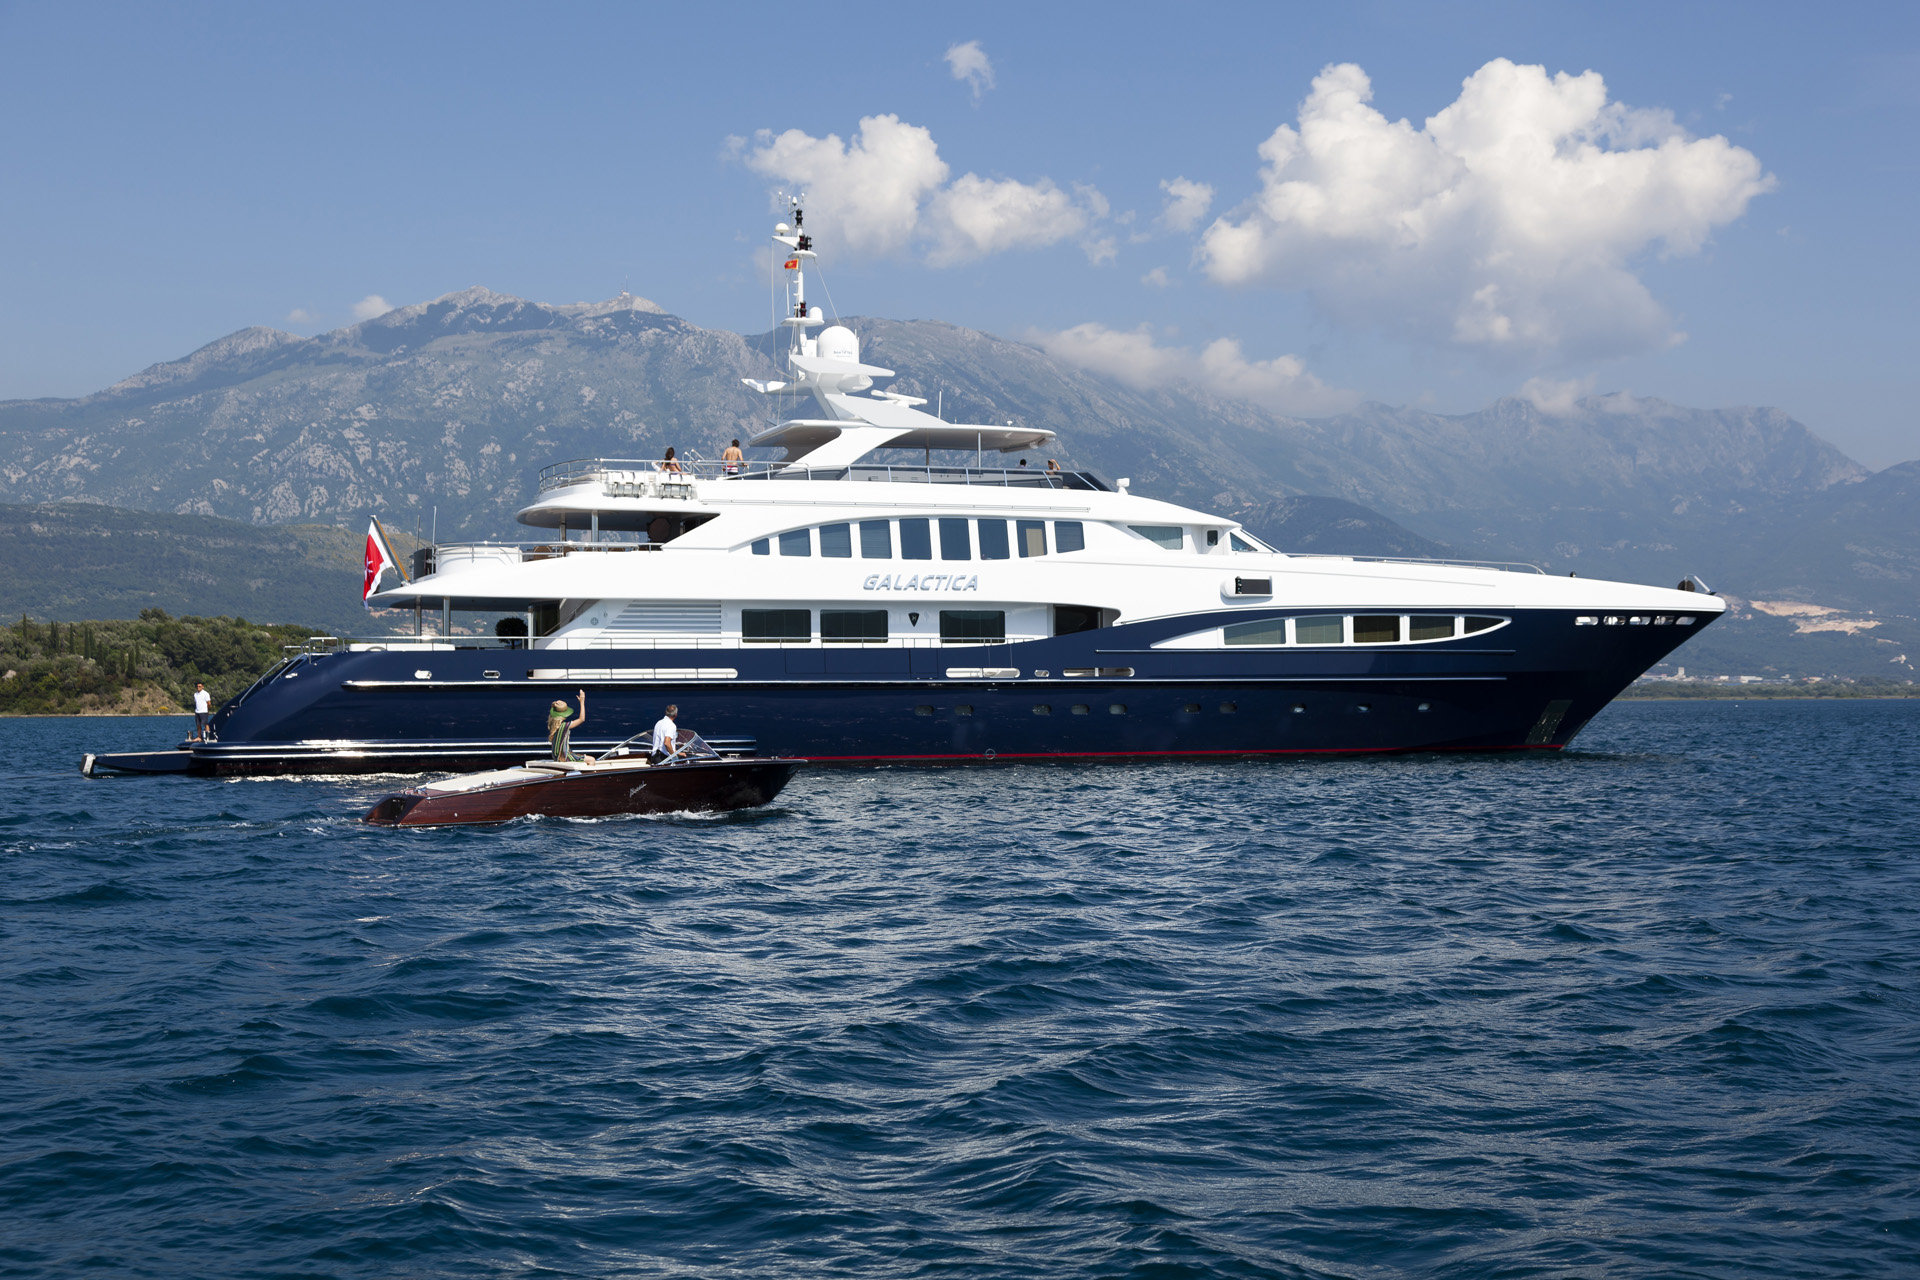 The YACHTZOO team is delighted to announce the sale of M/Y